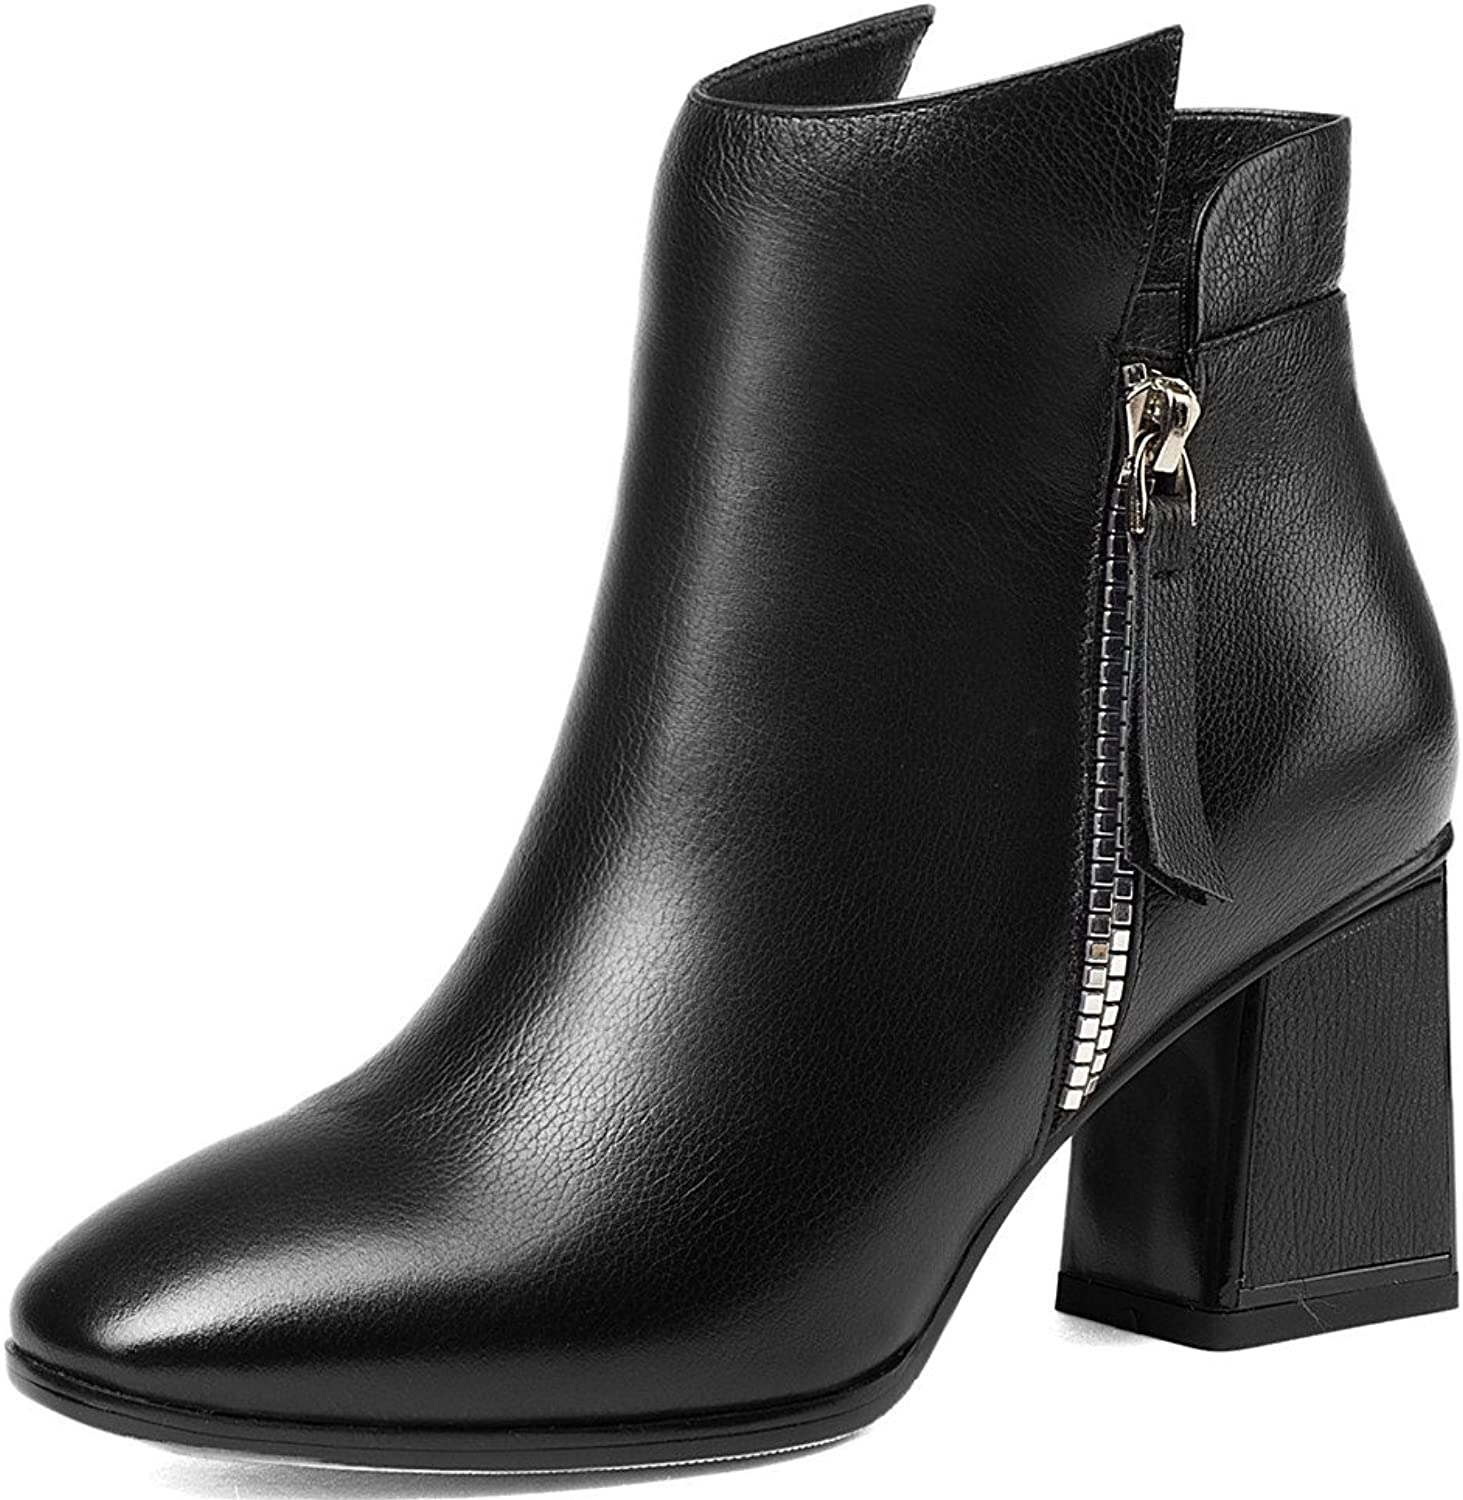 Nine Seven Genuine Leather Women's Round Toe Chunky Heel Business Handmade Classic Ankle Boots